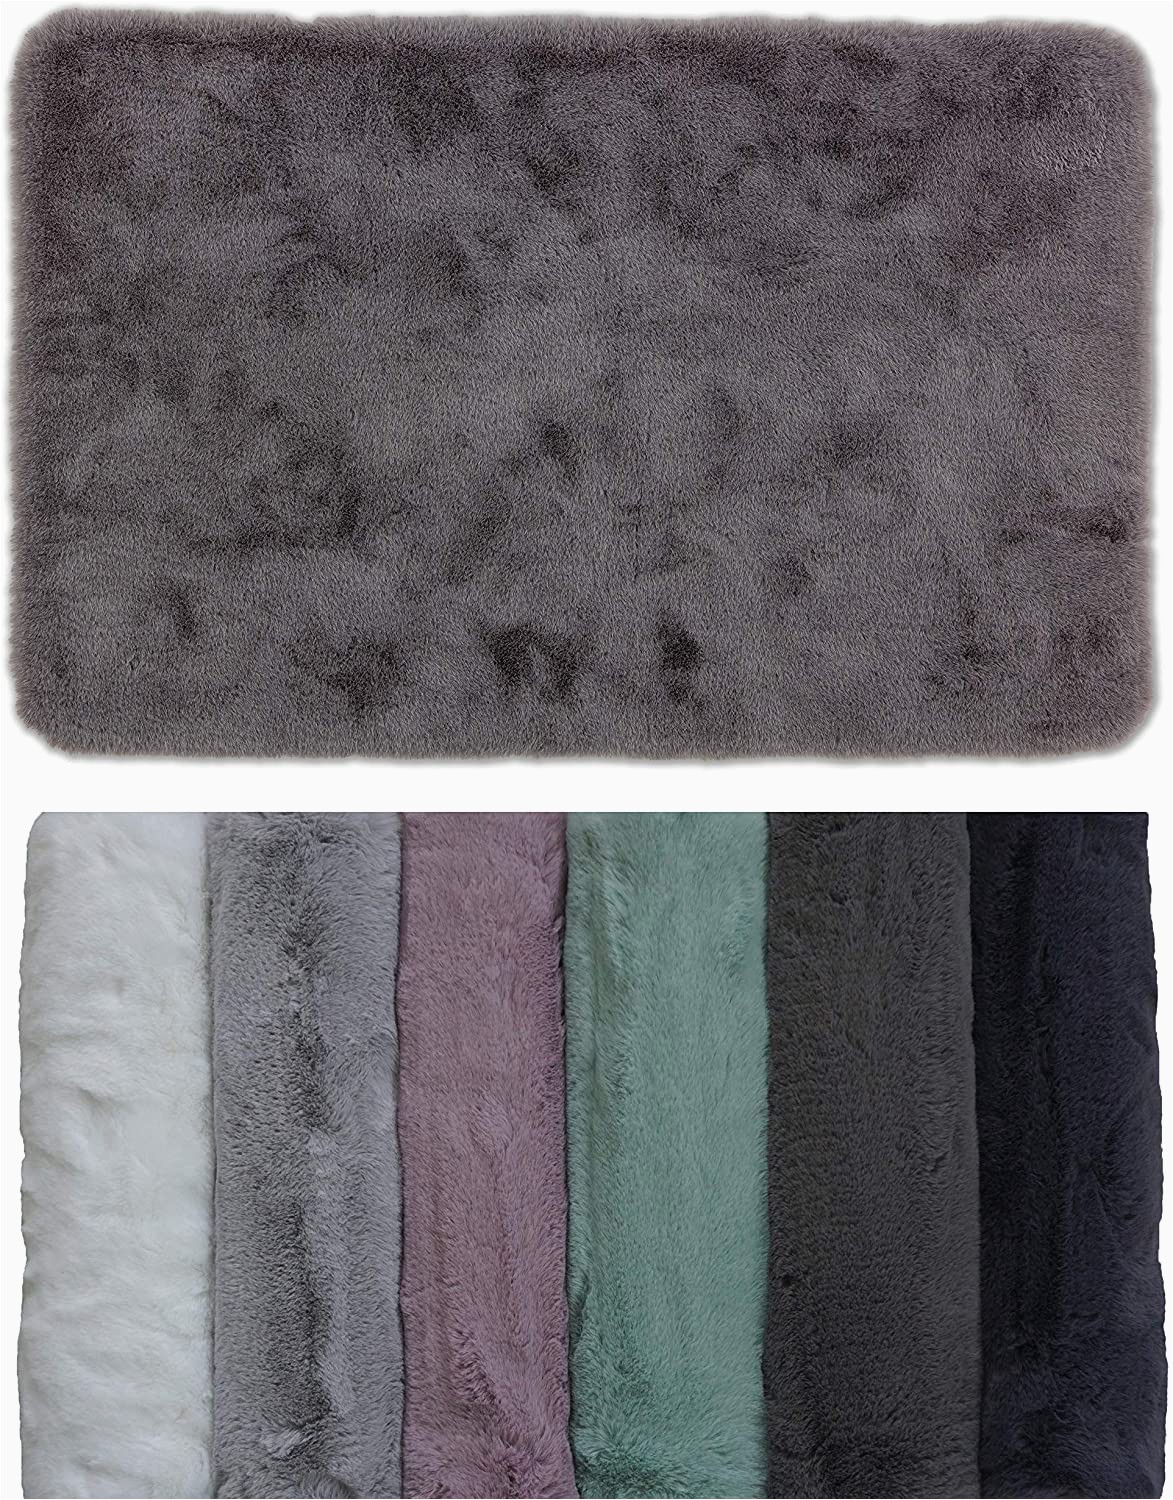 40 X 60 Bath Rug Schöner Wohnen Bathroom Rug Very Fluffy Bath Mat Washable and Non Slip Rose 40 X 60 Cm